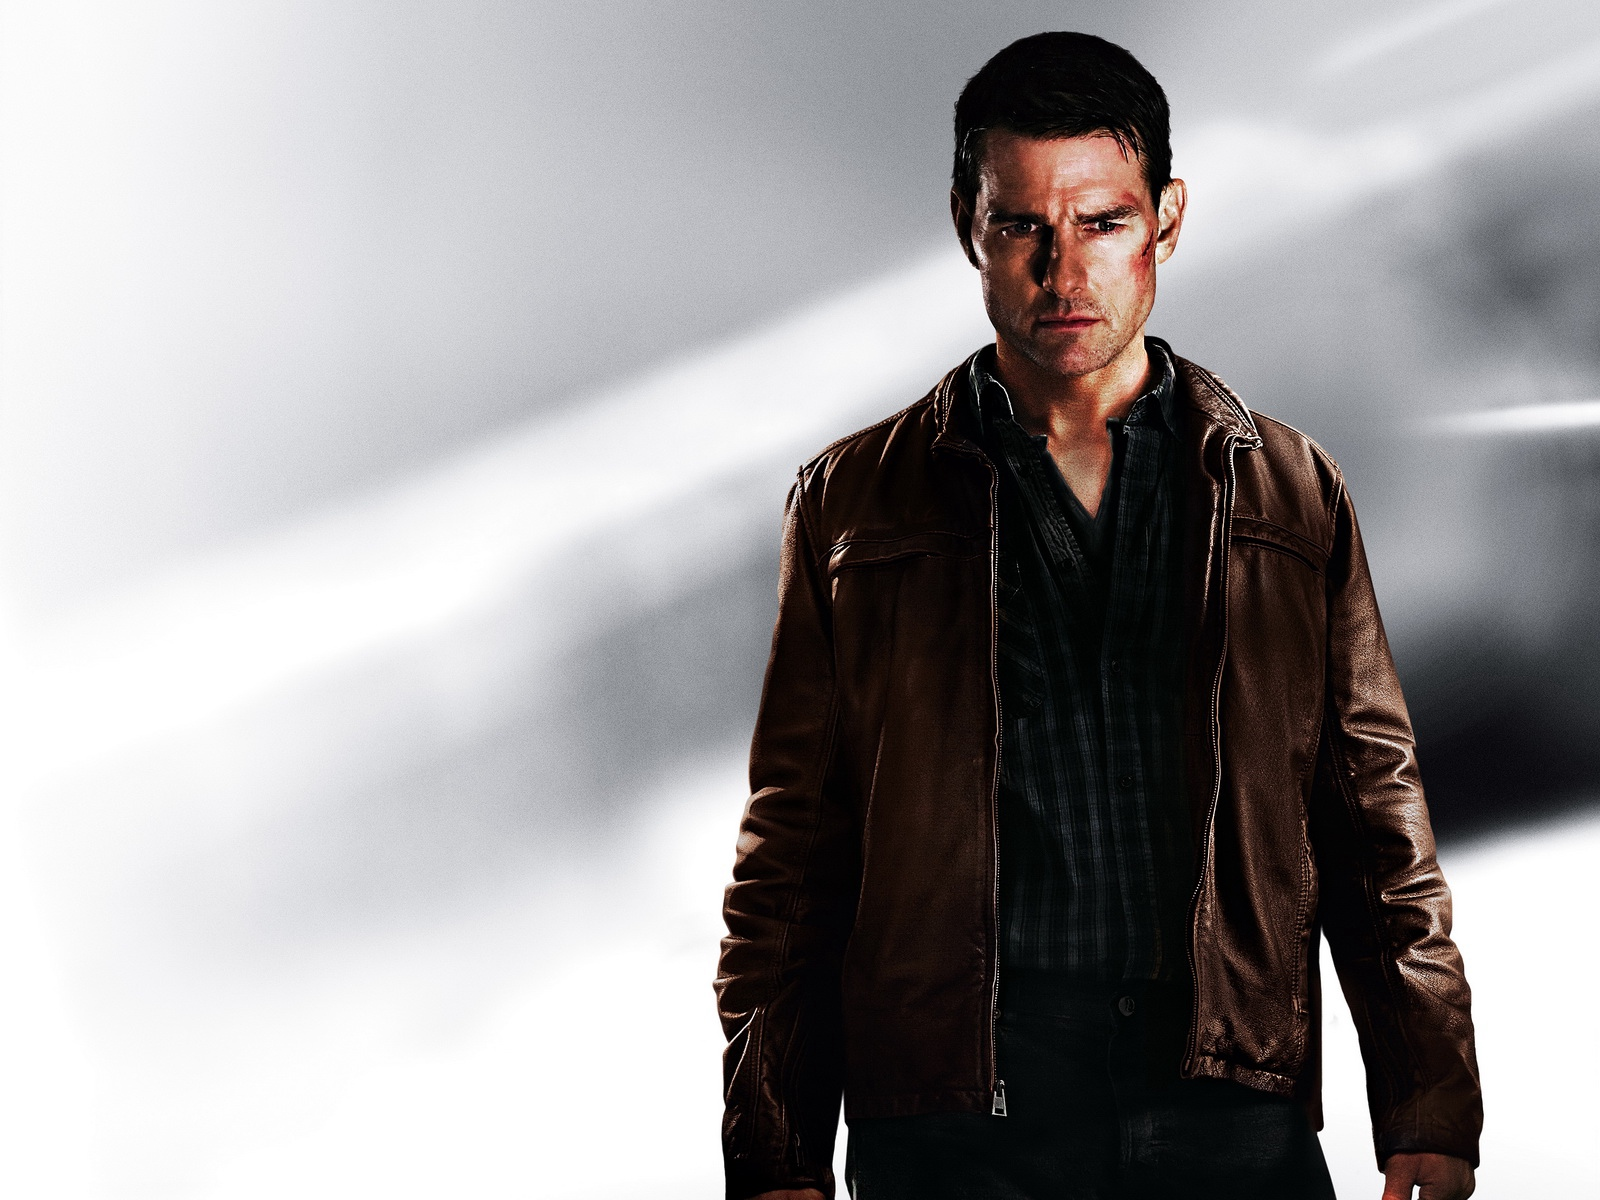 Download wallpaper 1600x1200 jack reacher 2012 tom cruise hd 1600x1200